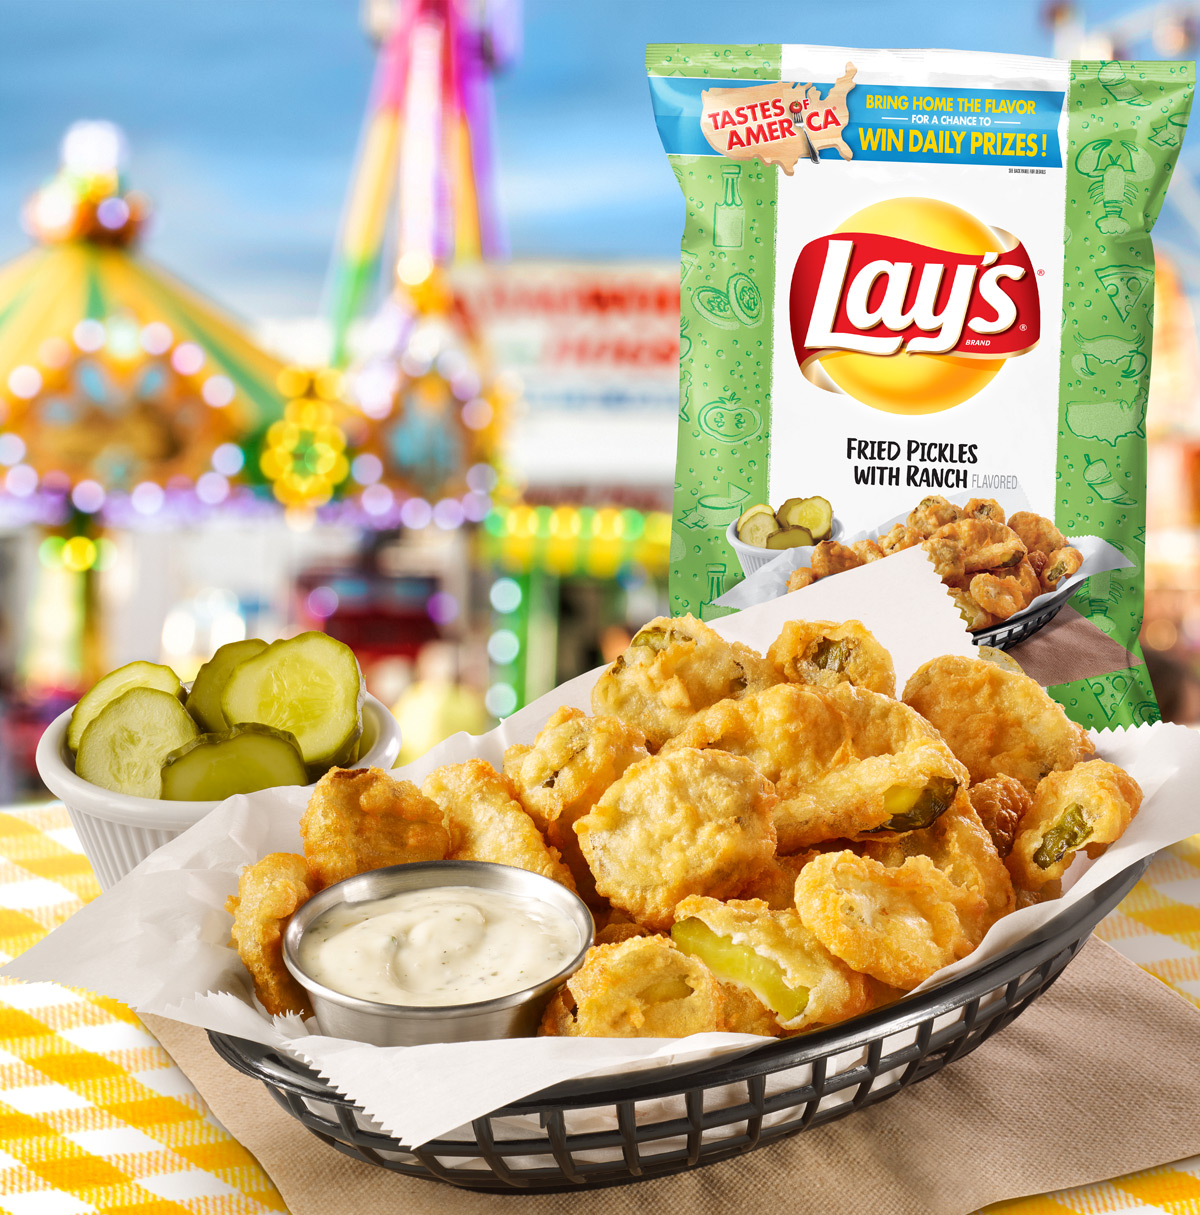 Lay's Fried Pickles with Ranch Potato Chips